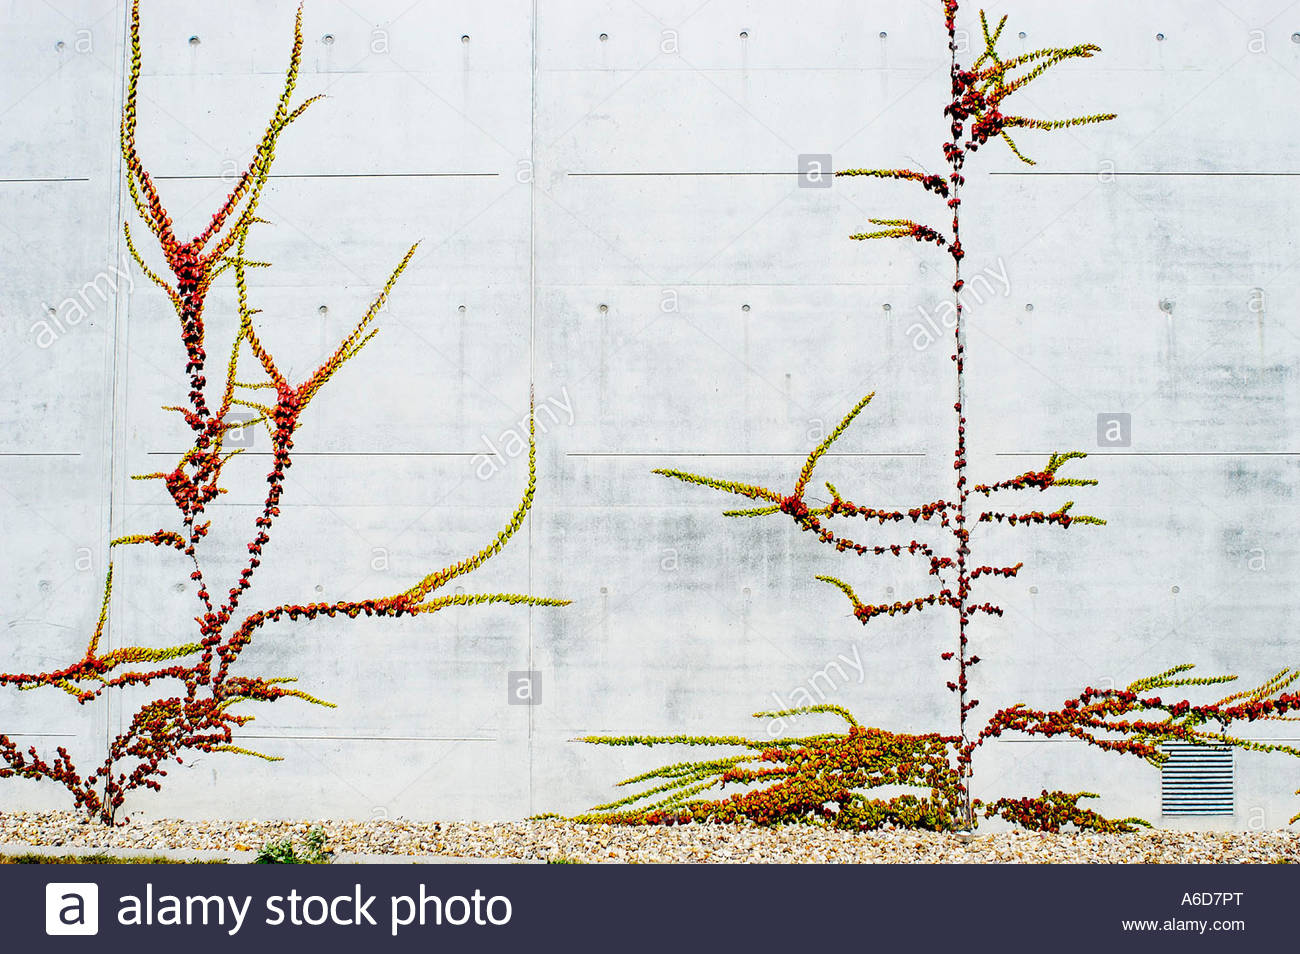 Plants depicted on a wall - Stock Image